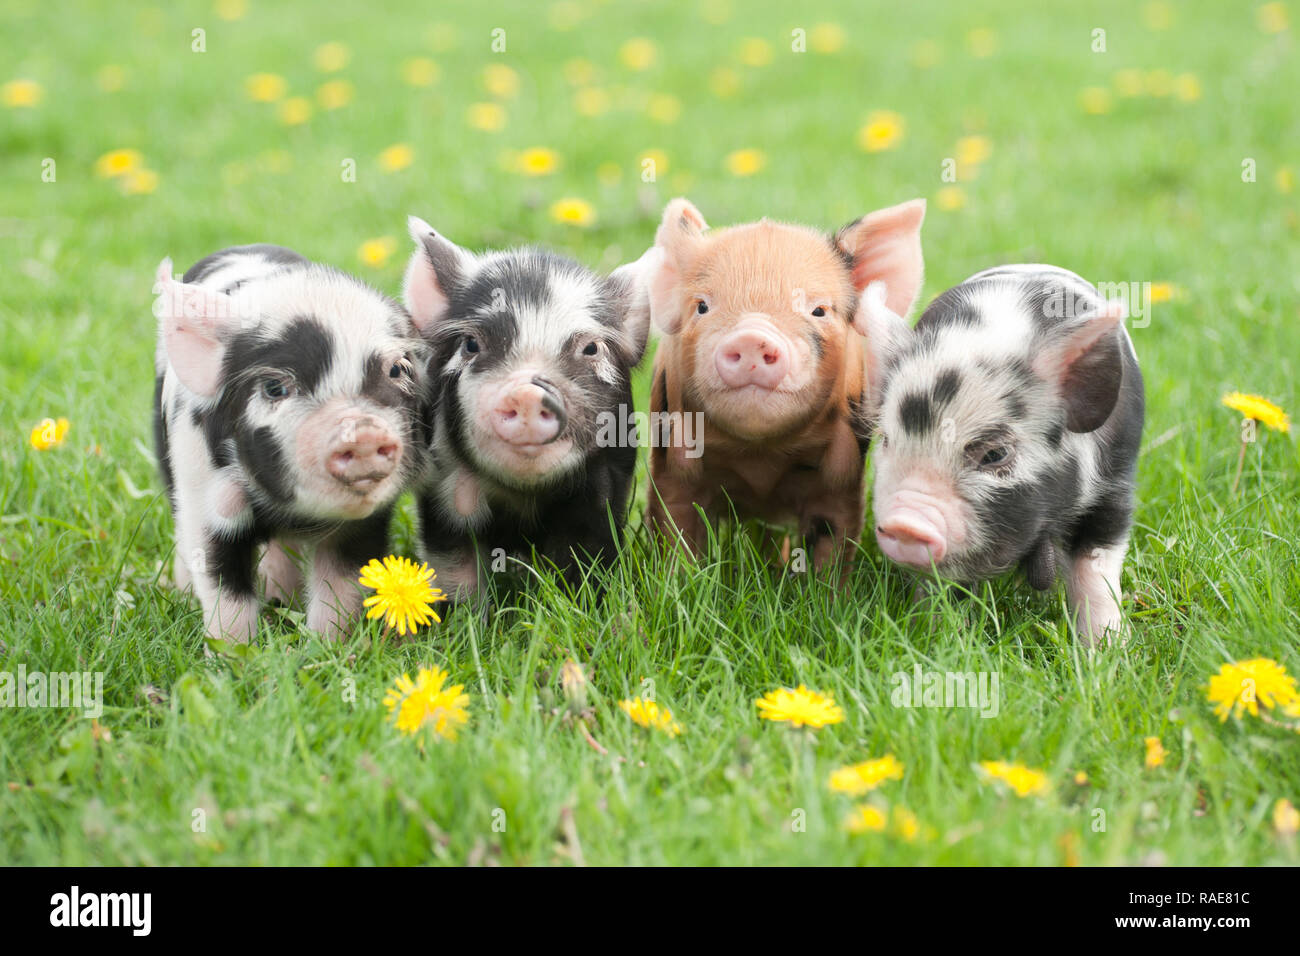 Cute Baby Pigs High Resolution Stock Photography And Images Alamy